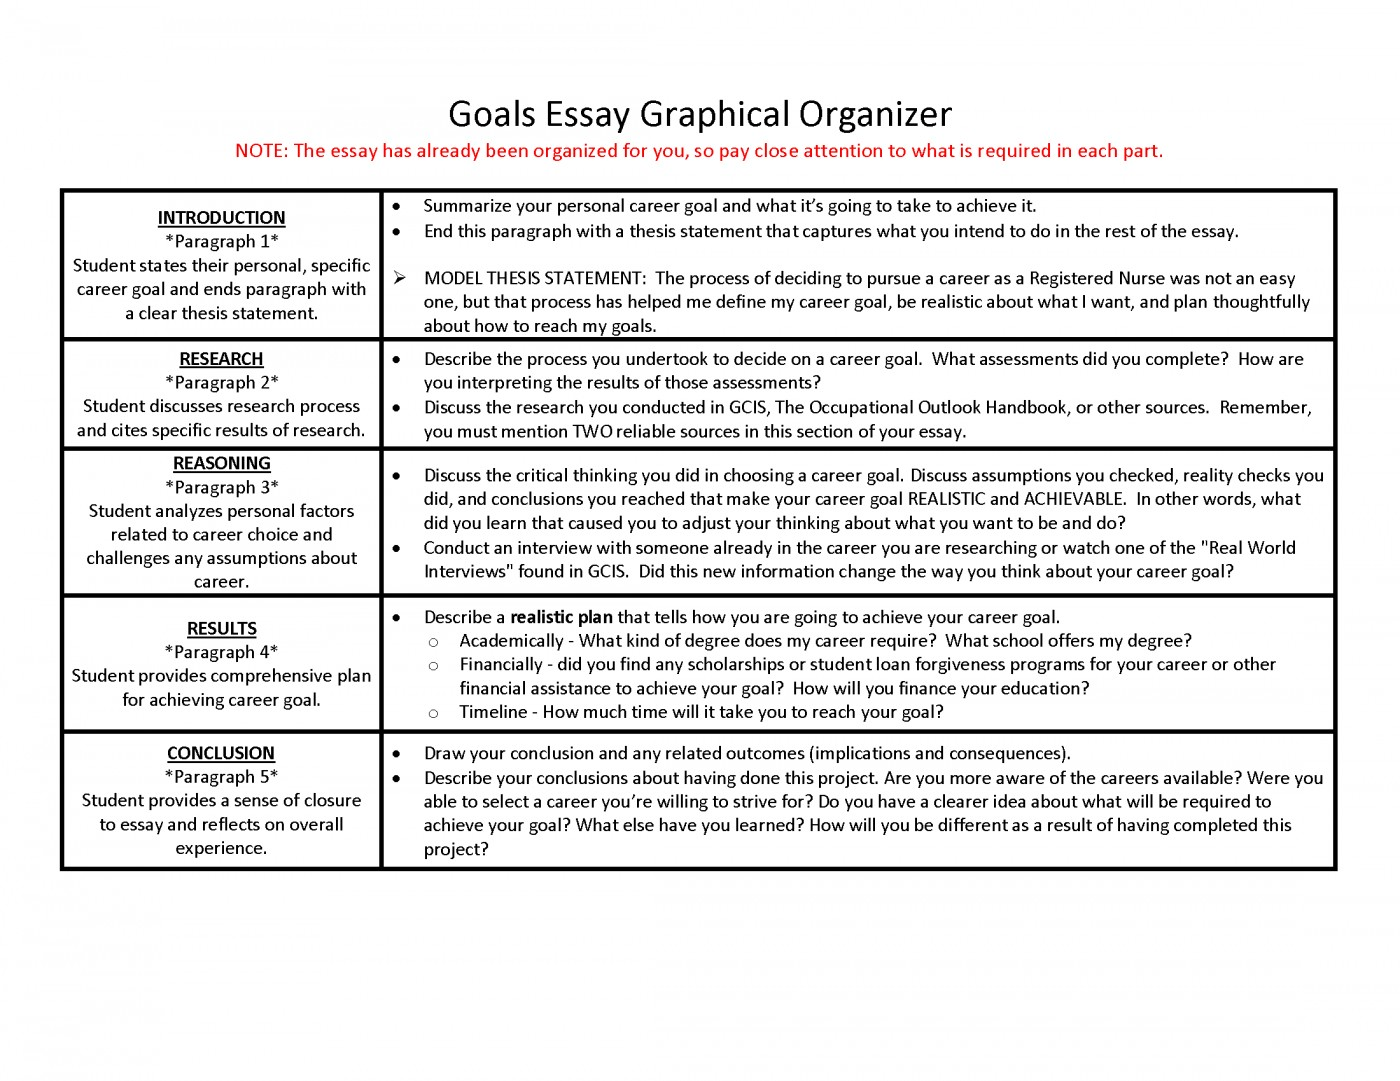 007 Lochhaas Fig027 Educational And Career Goals Essay Awesome Plans For Business On Future 1400